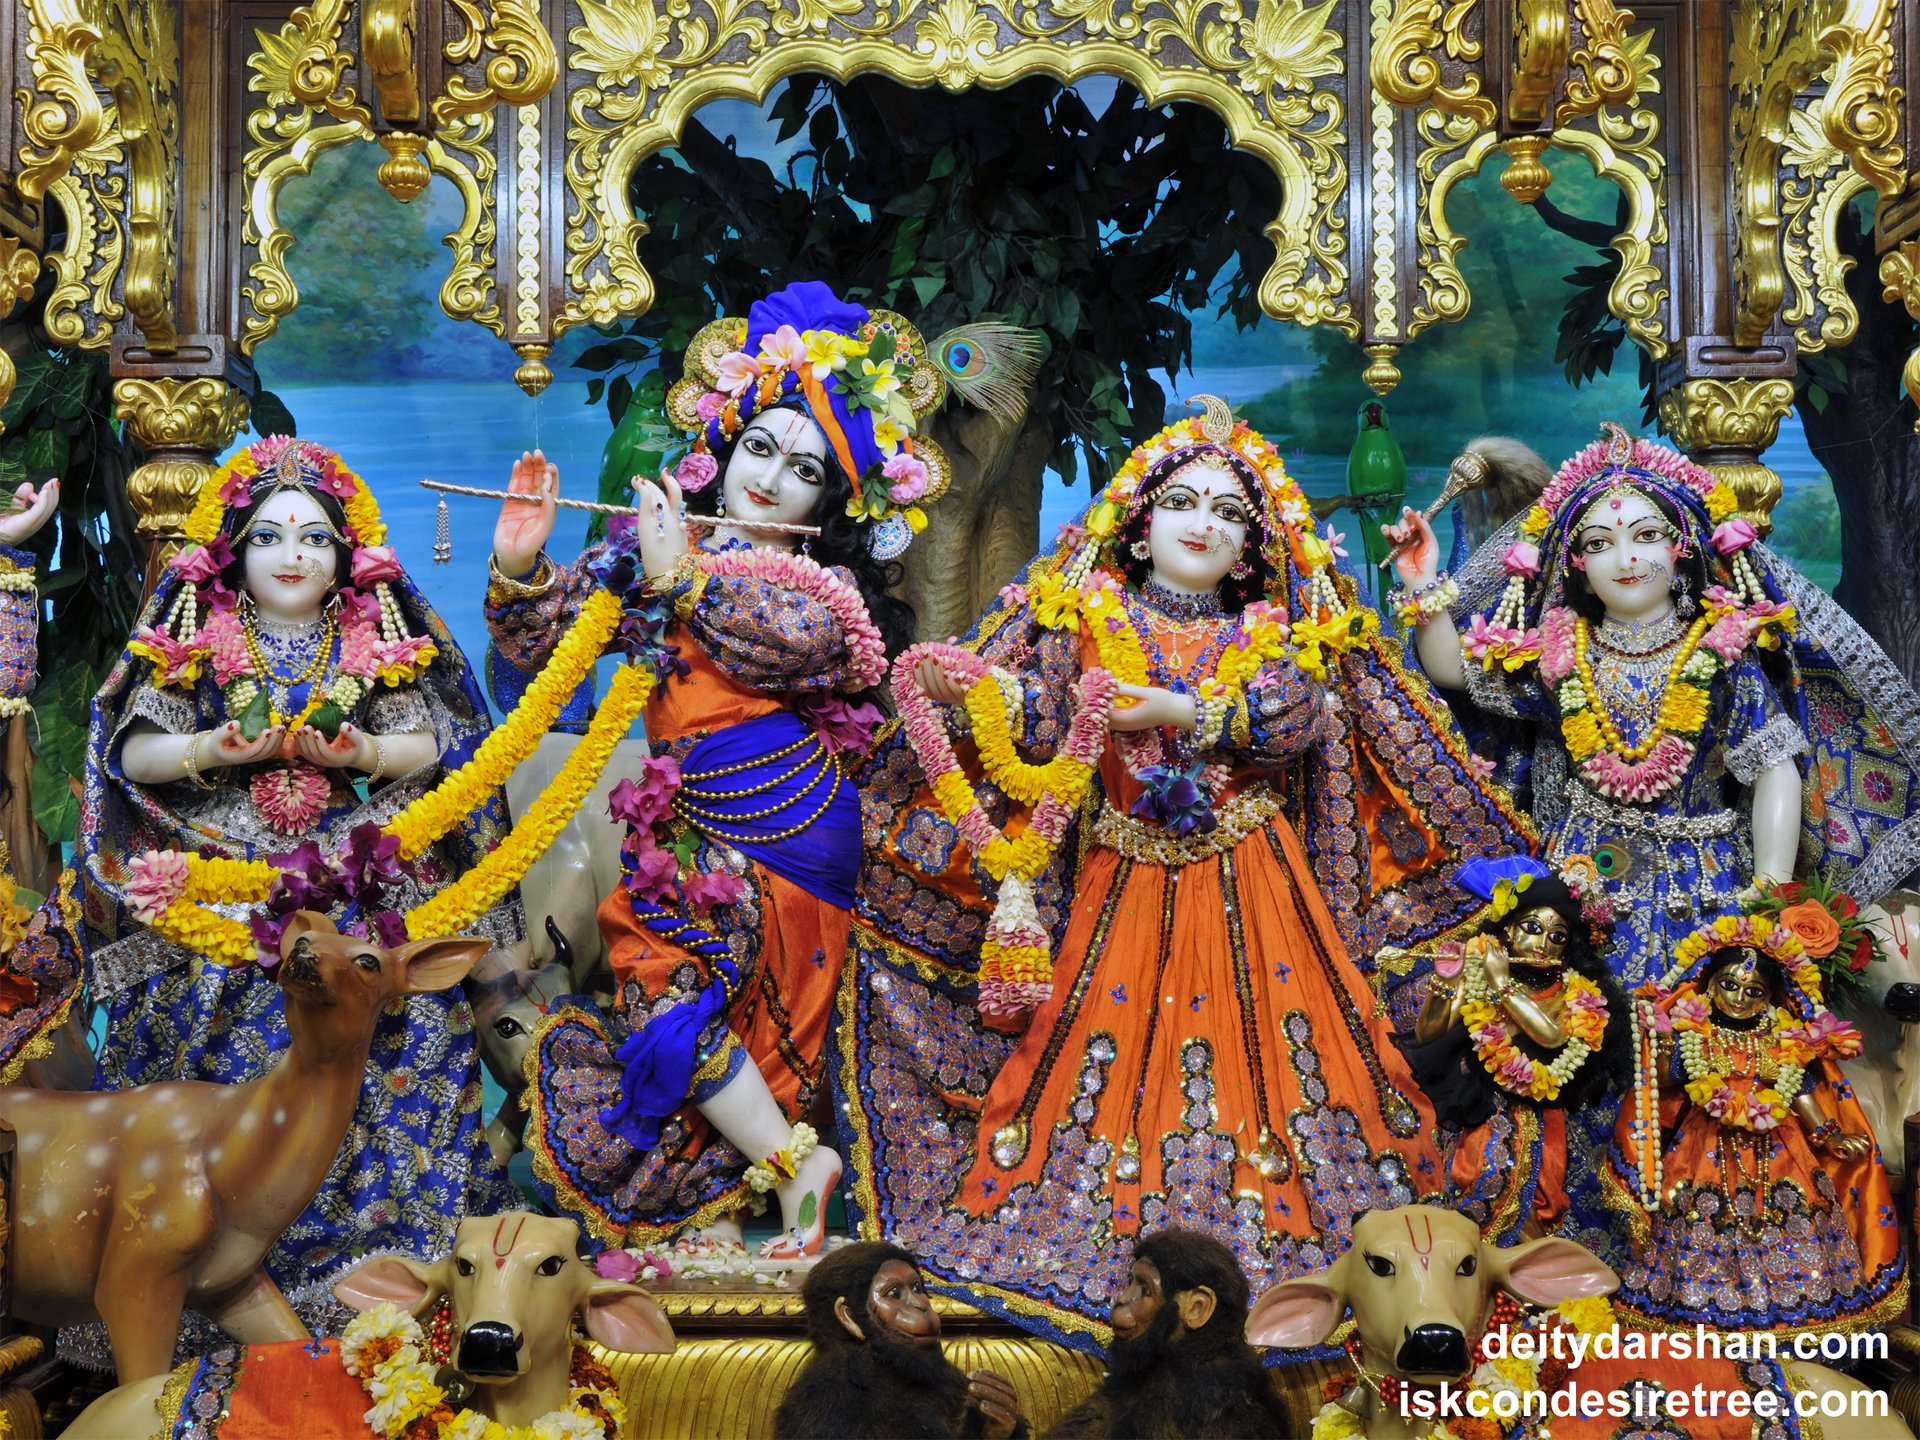 Sri Sri Radha Gopinath Lalita Vishakha Wallpaper (051) Size 1920x1440 Download